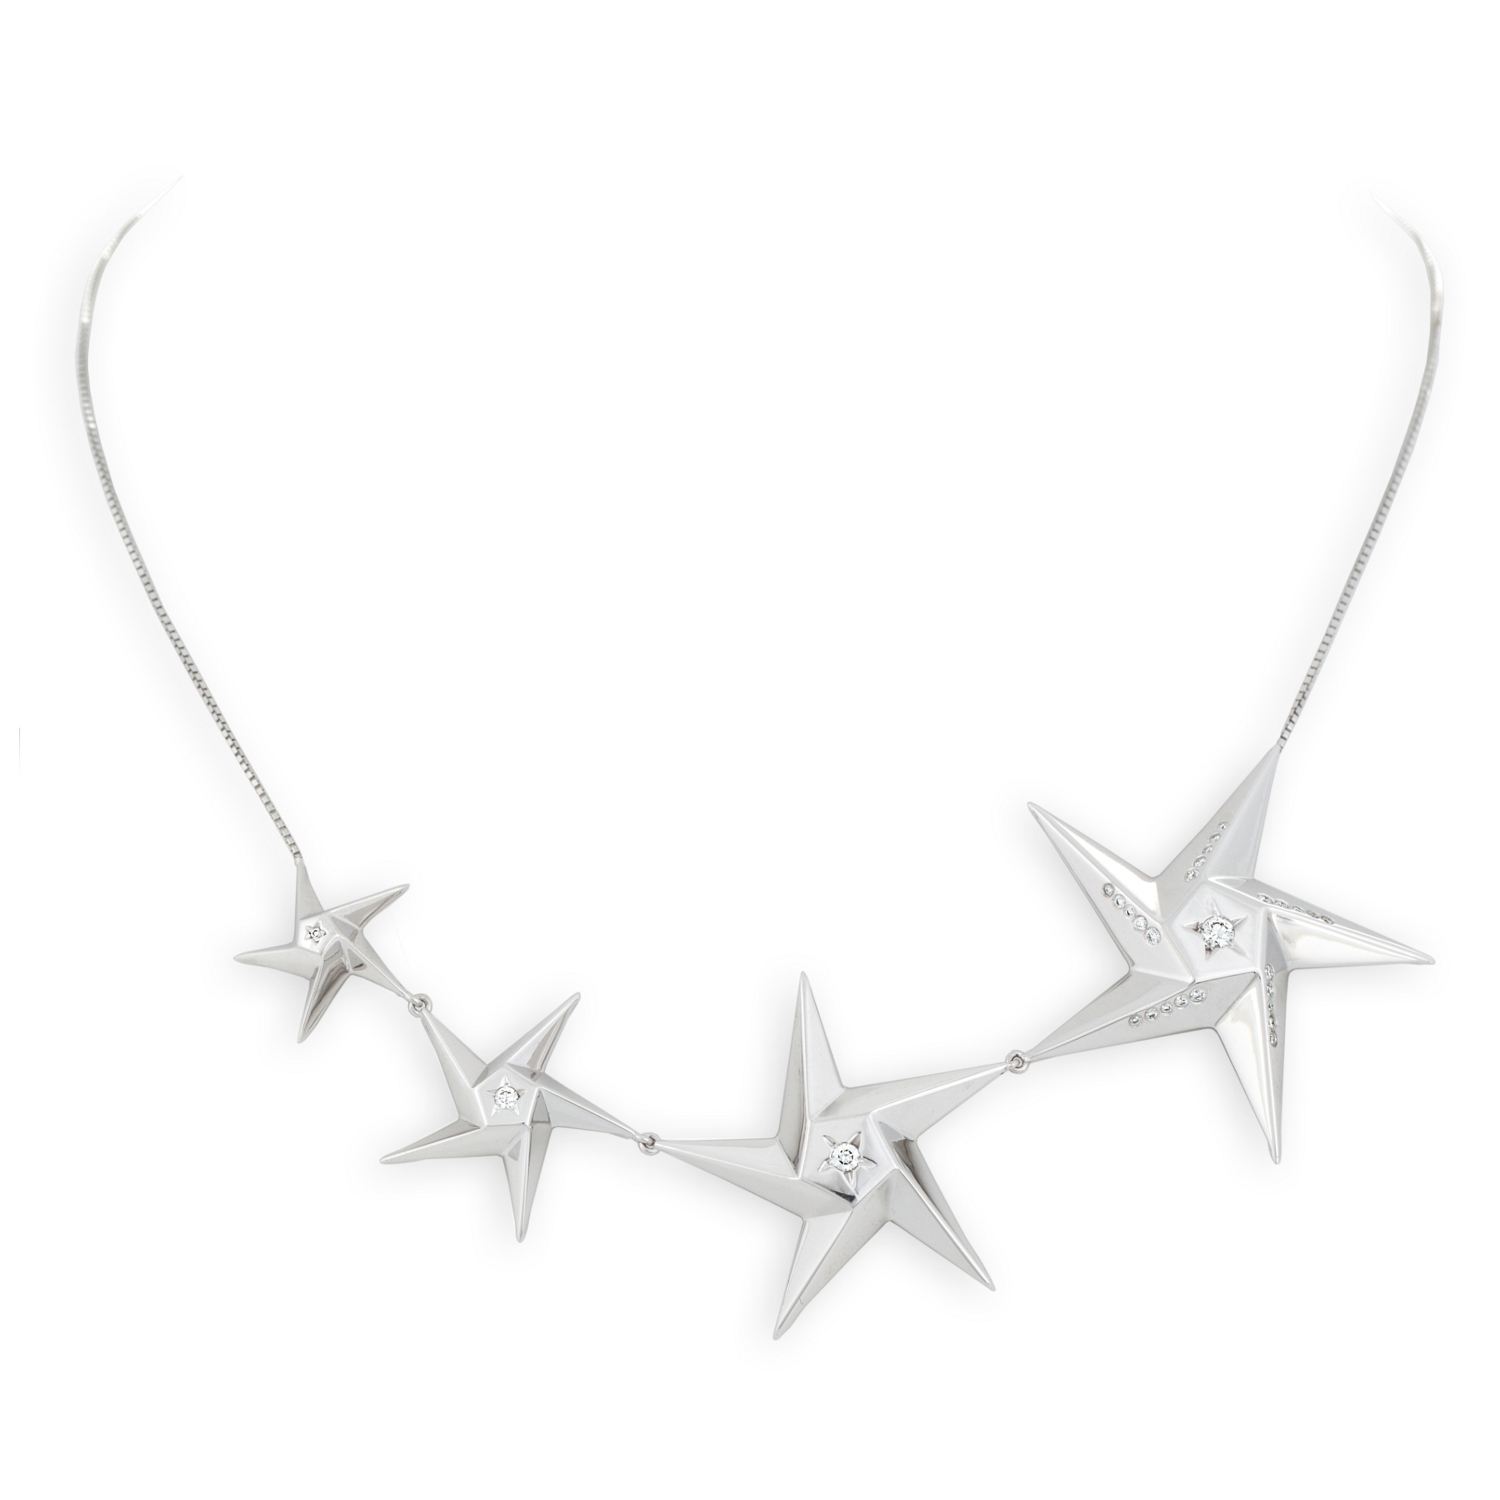 DAOU JEWELLERY Starlight Necklace